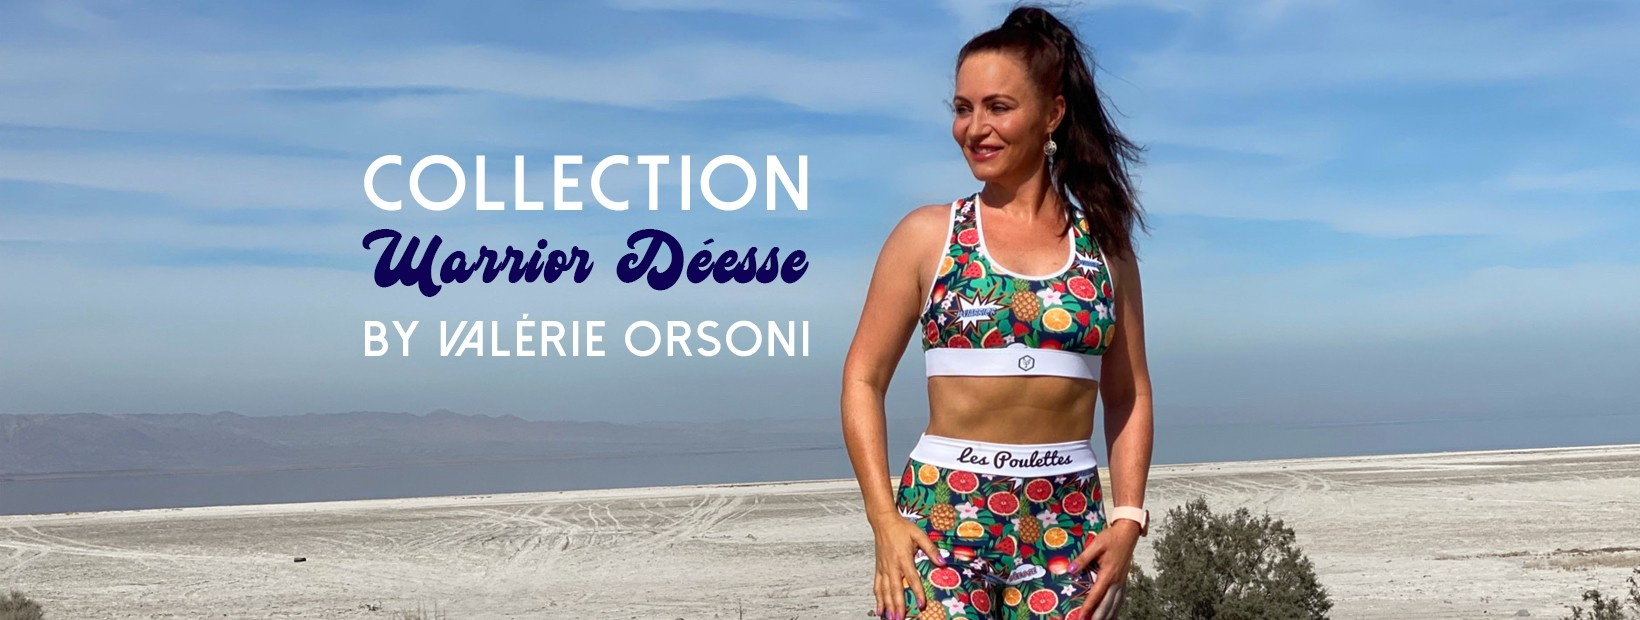 Collection Warrior Déesse by Valérie Orsoni